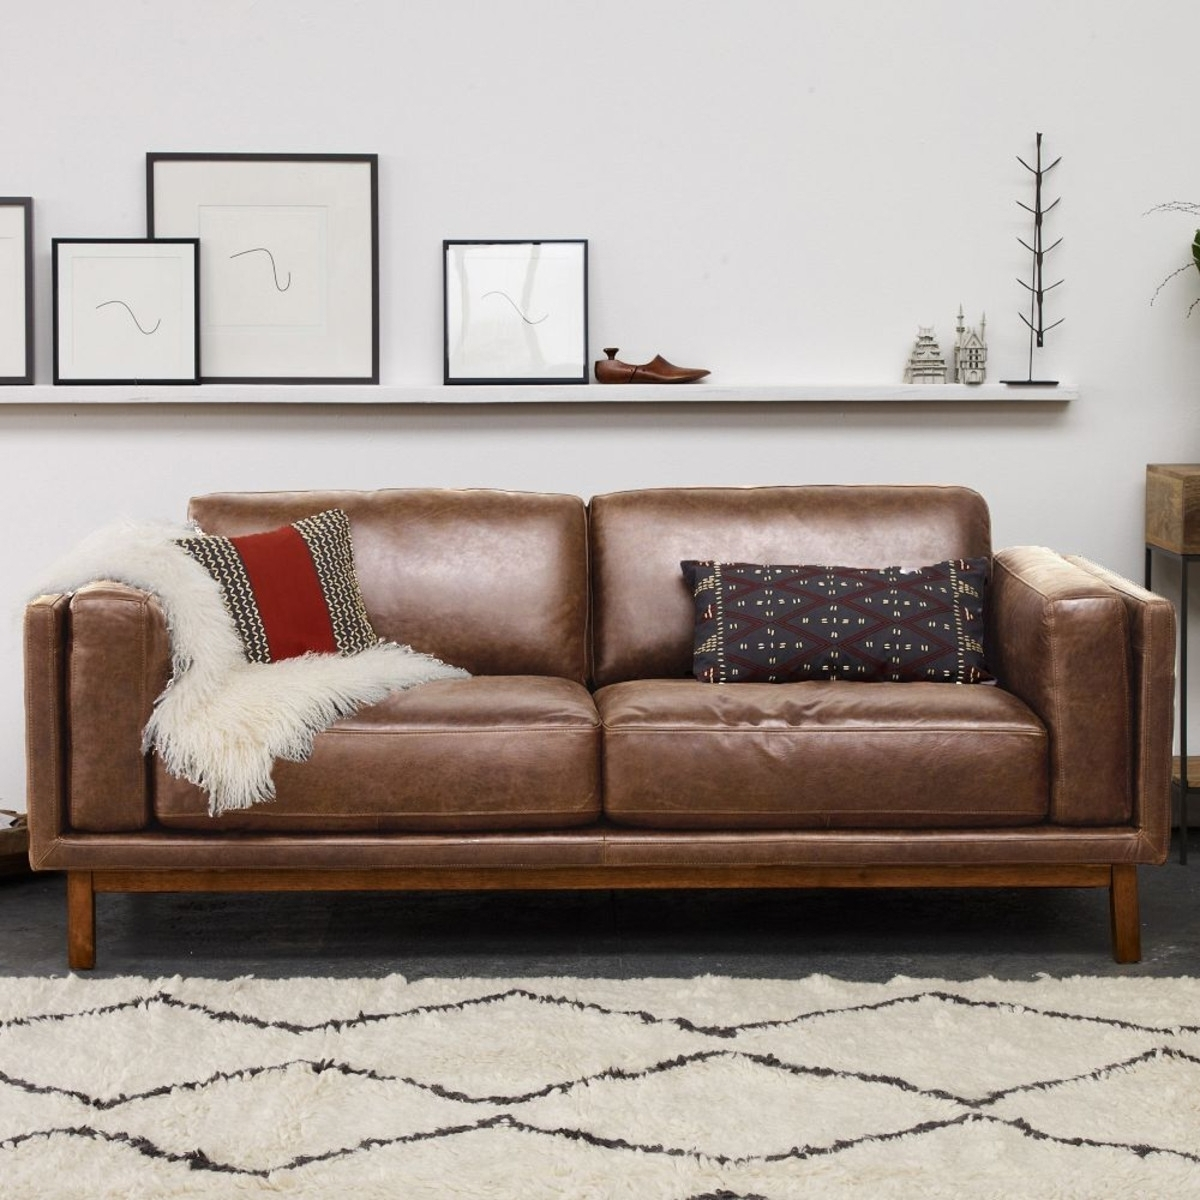 Bad Boy Furniture Sectional Sofas • Sectional Sofa Intended For Sectional Sofas At Bad Boy (View 3 of 15)